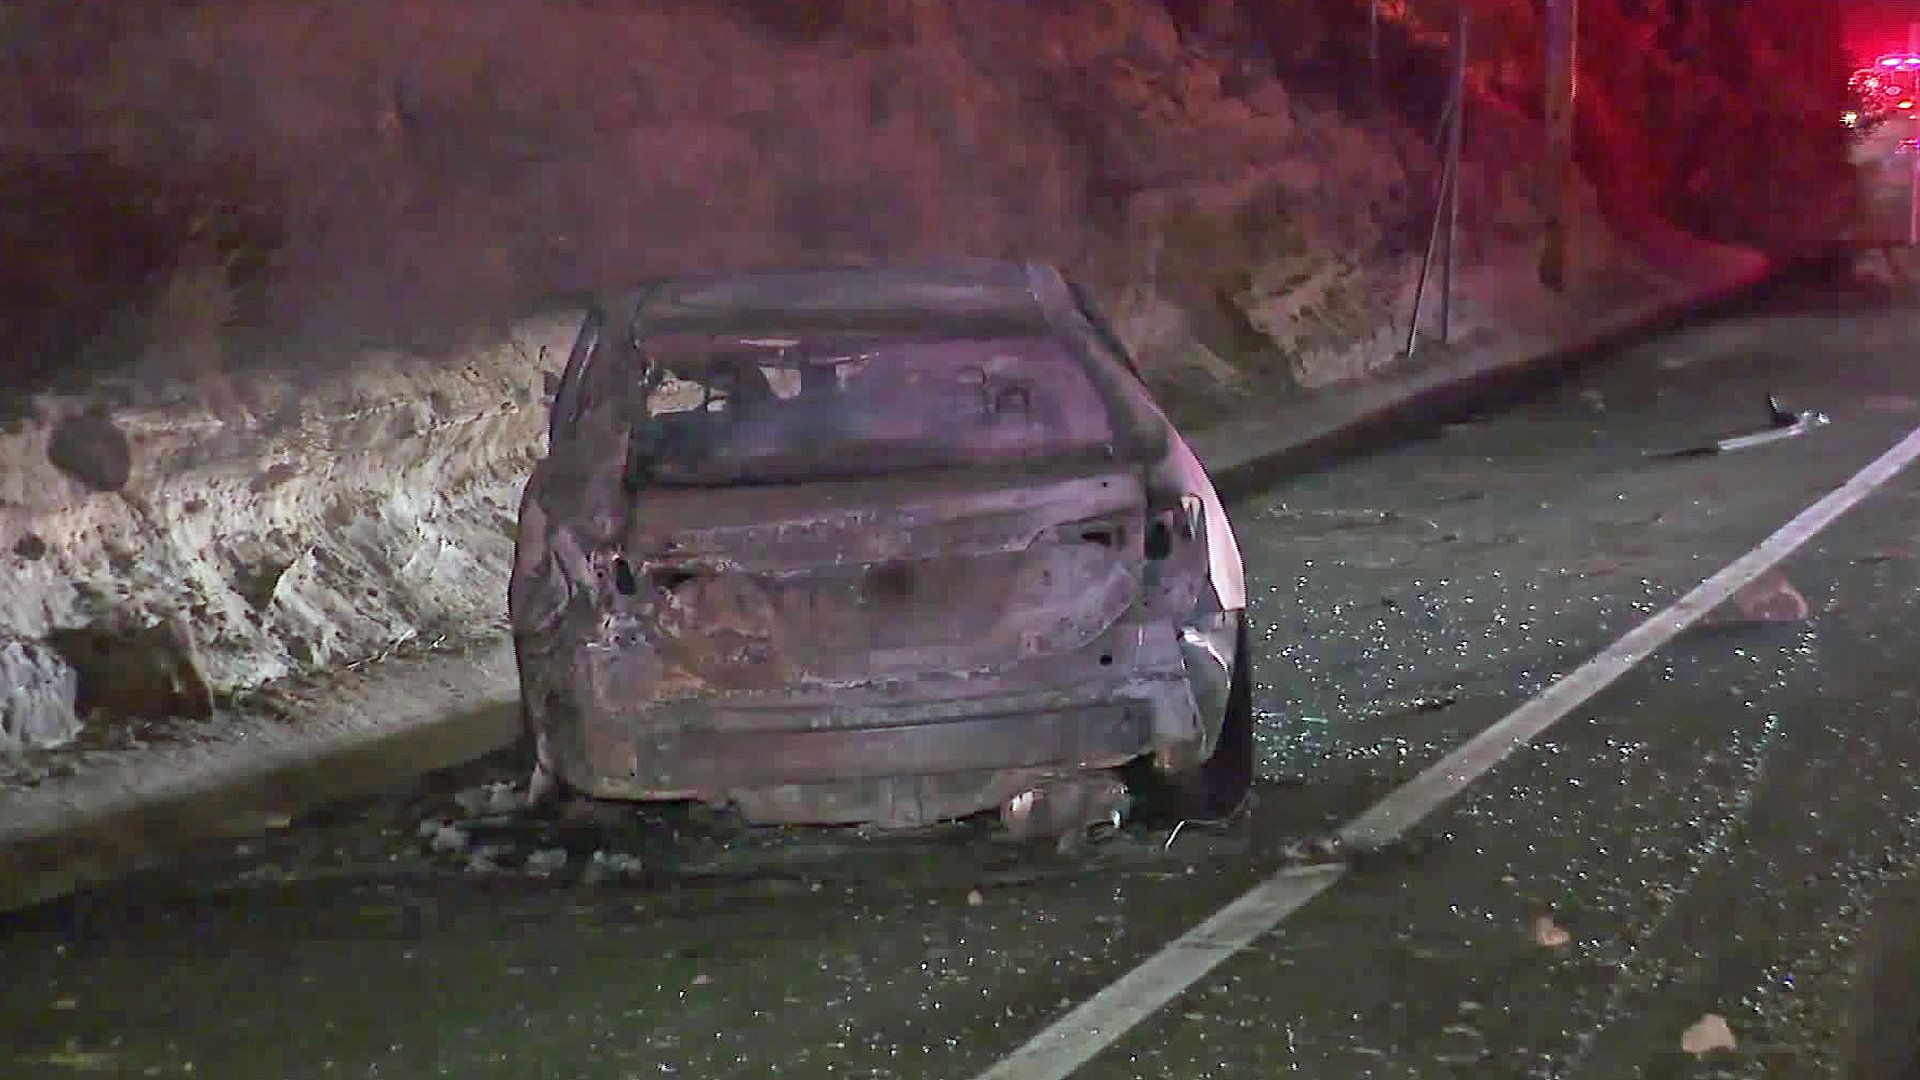 A brush fire in the Santiago Canyon area was started by a suspected DUI driver, officials said on Oct. 24, 2019. (Credit: KTLA)